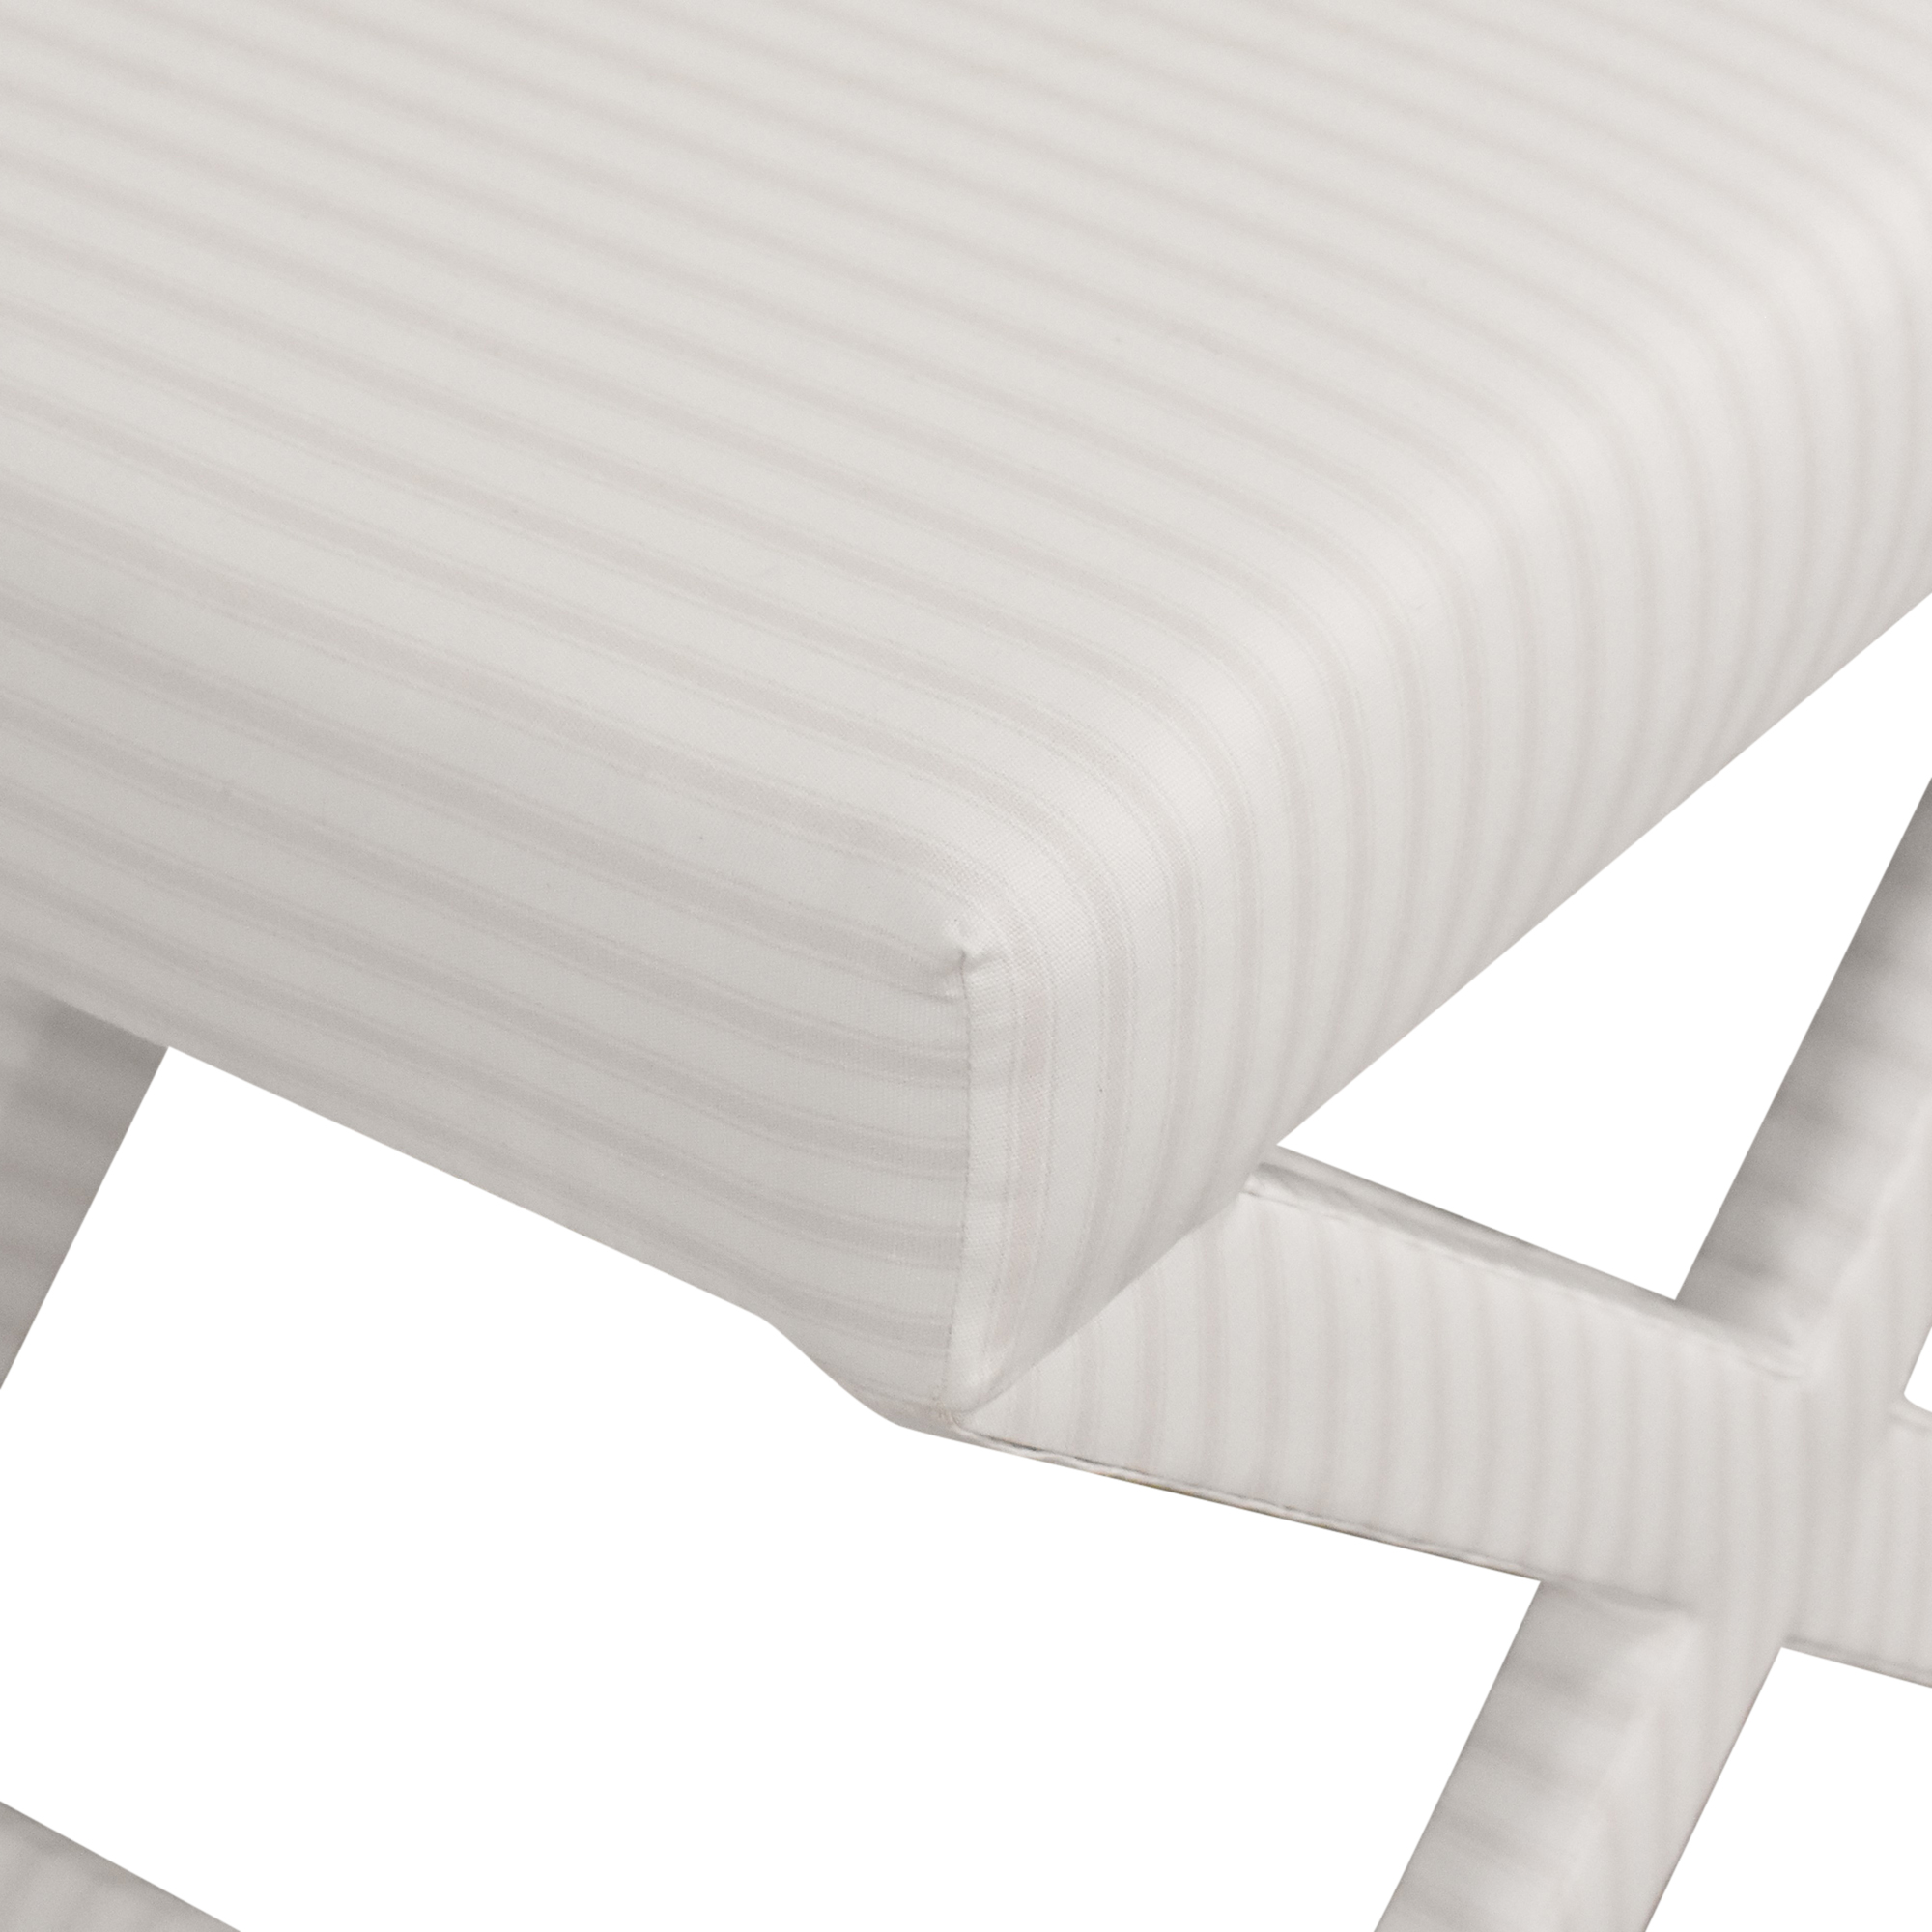 The Inside The Inside Classic Ticking Stripe X Bench light pink and white